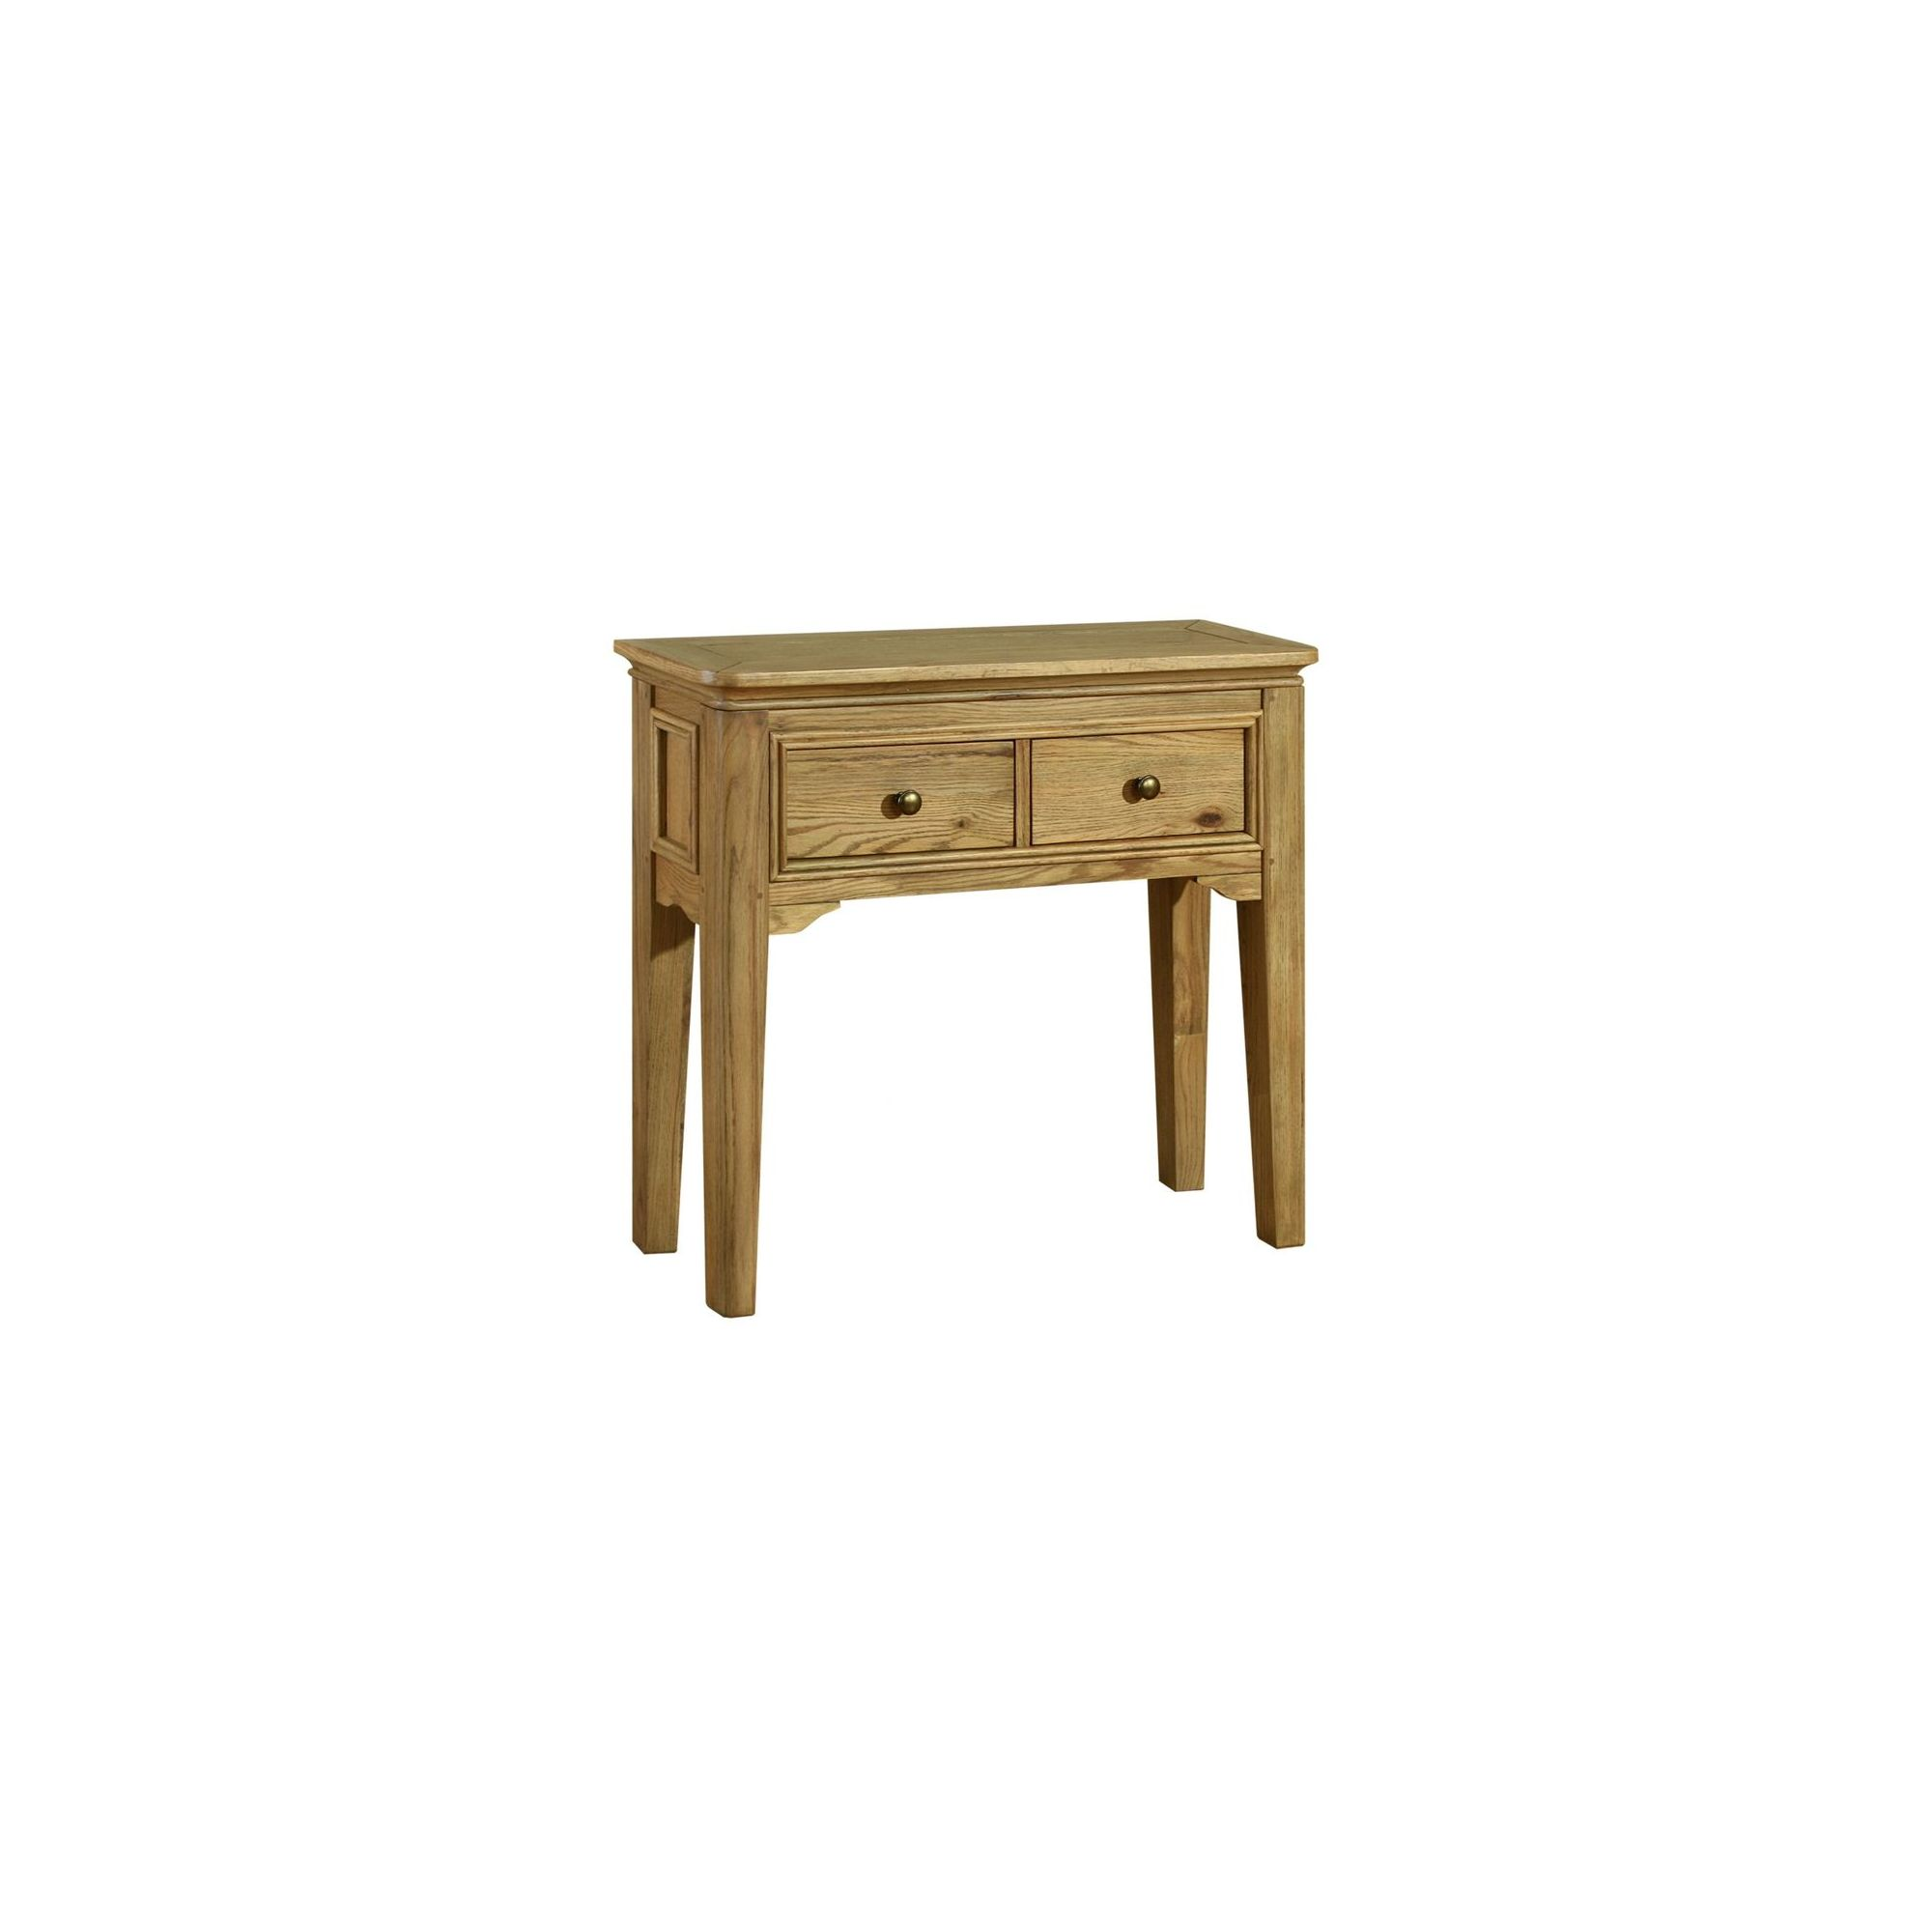 Kelburn Furniture Loire Console Table in Light Oak Stain and Satin Lacquer at Tesco Direct